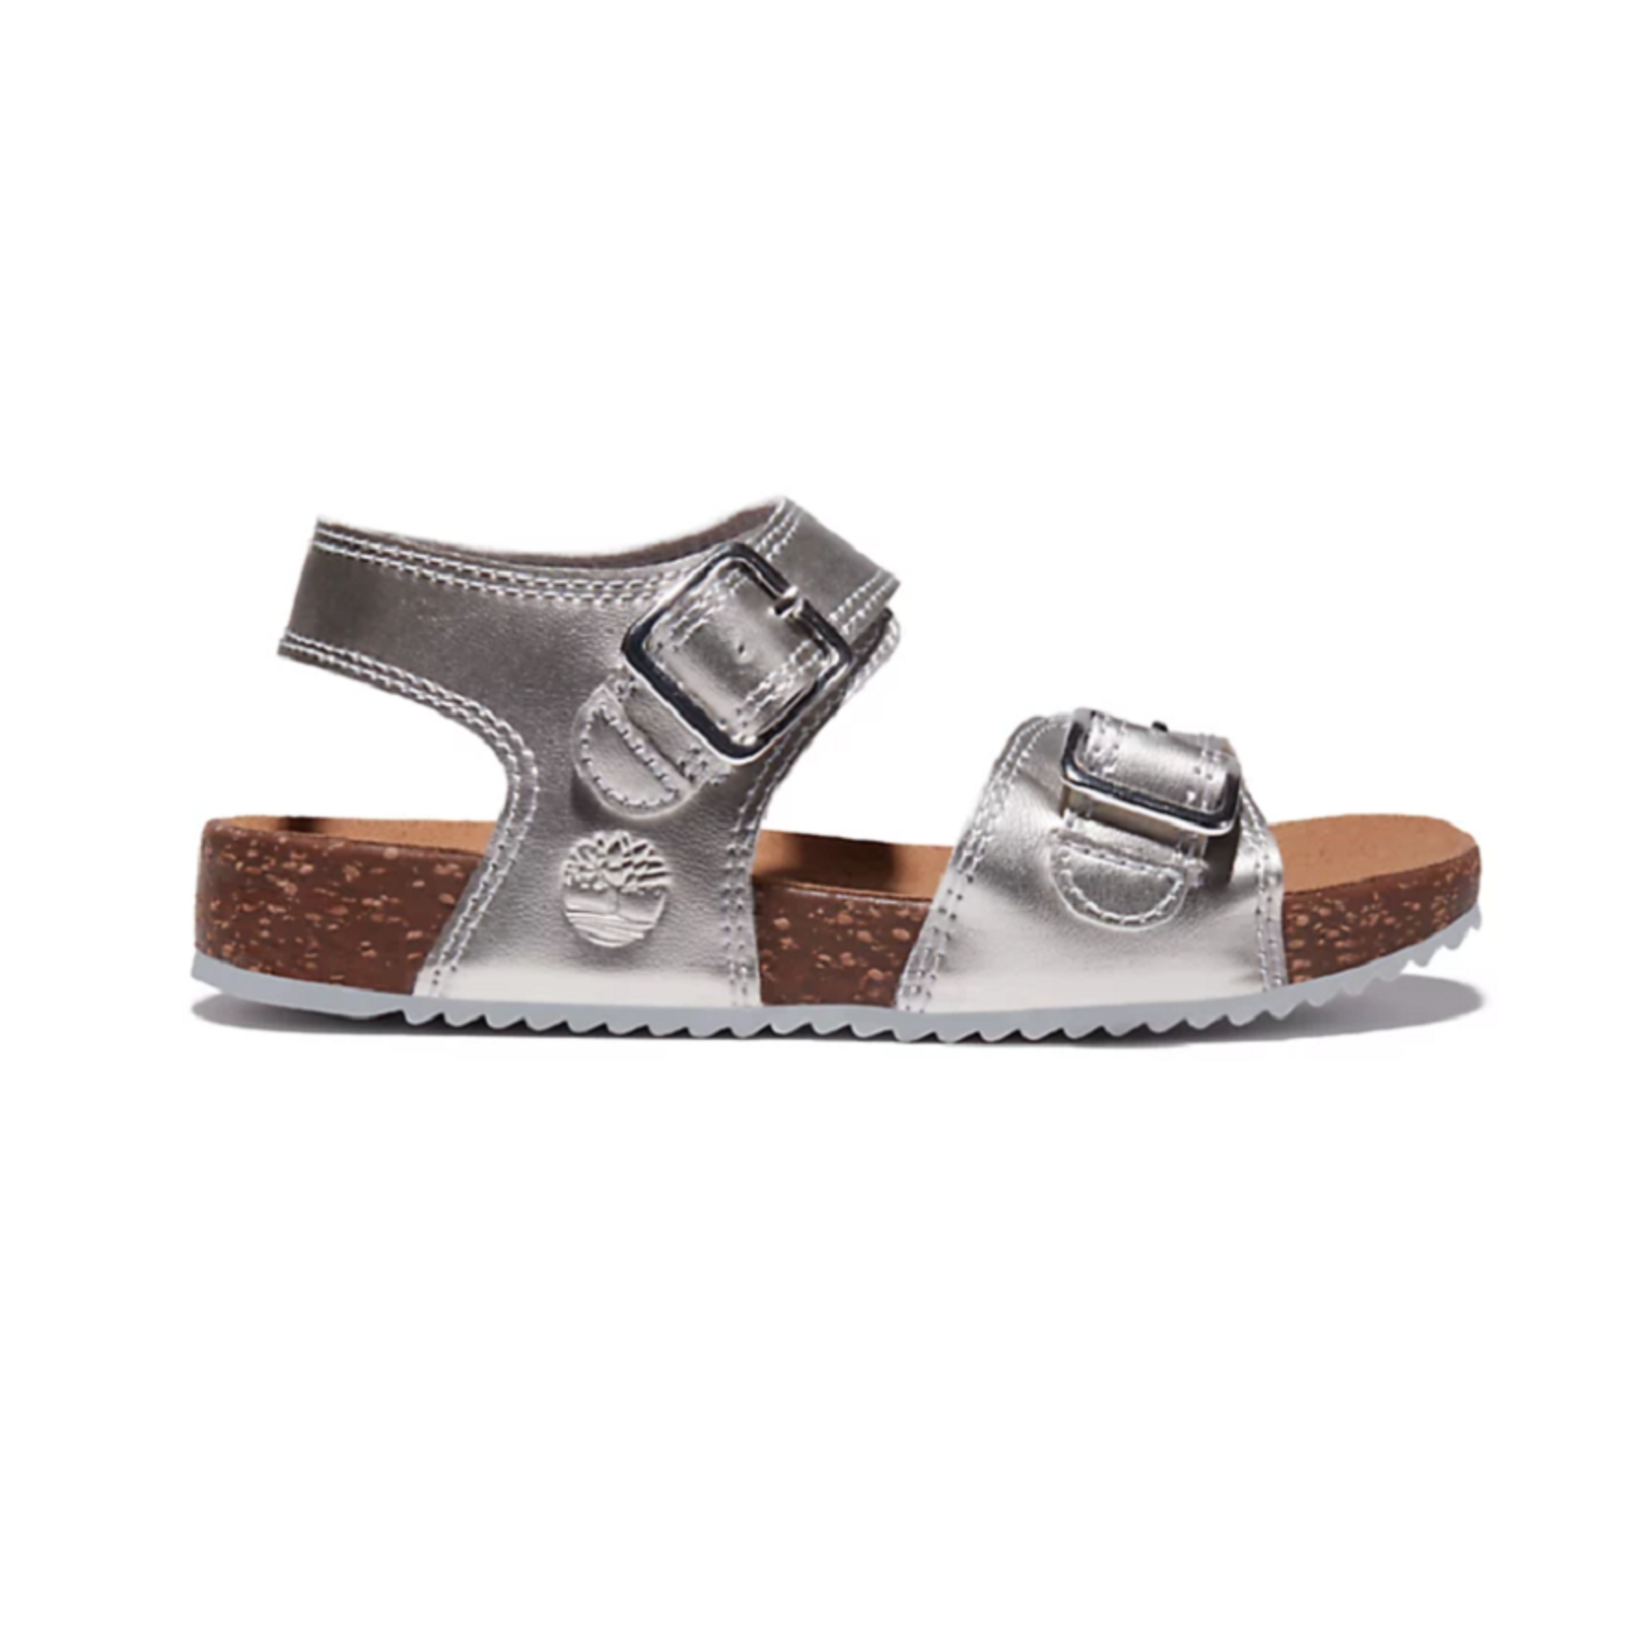 Timberland CASTLE ISLAND SANDAL FOR TODDLER IN SILVER